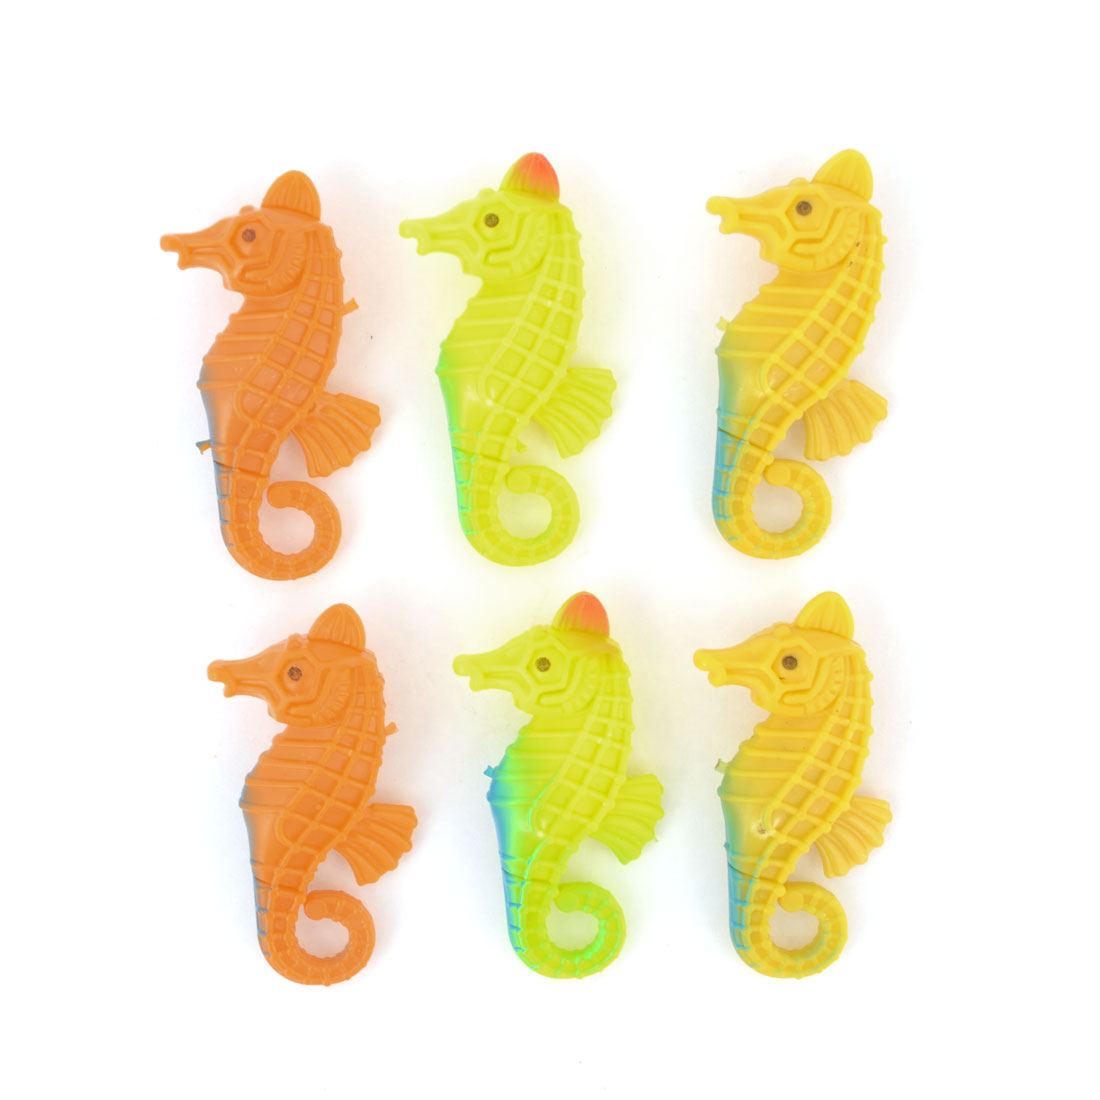 6 Pcs Yellow Khaki Orange Hard Plastic Emulational Animal Seahorse Toy